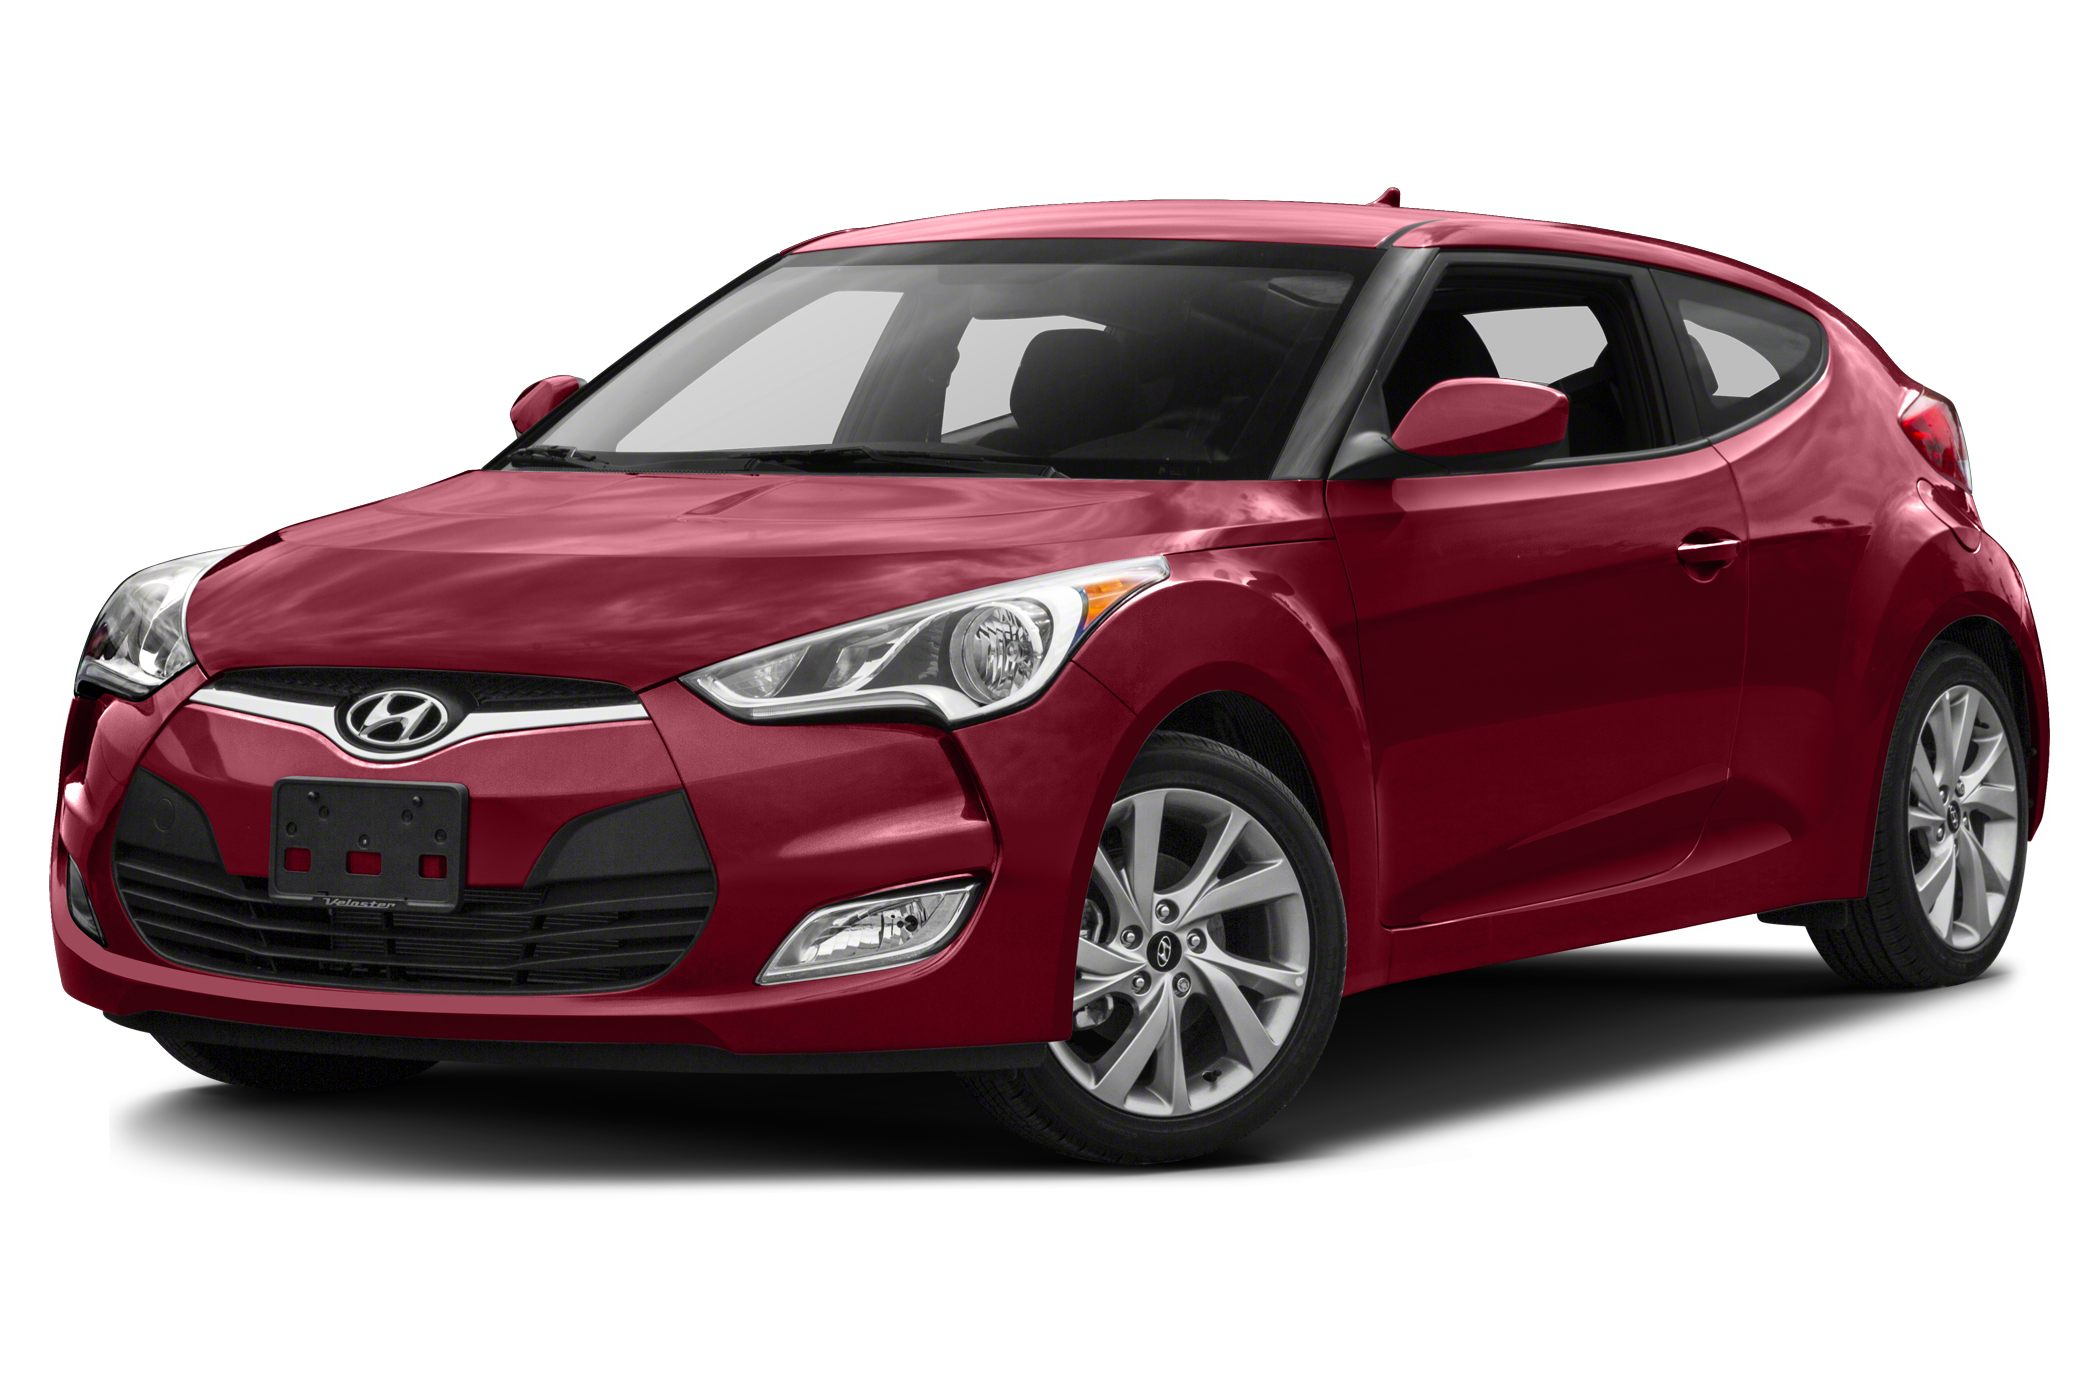 2016 hyundai veloster turbo gets 7 speed dct rally edition model autoblog. Black Bedroom Furniture Sets. Home Design Ideas